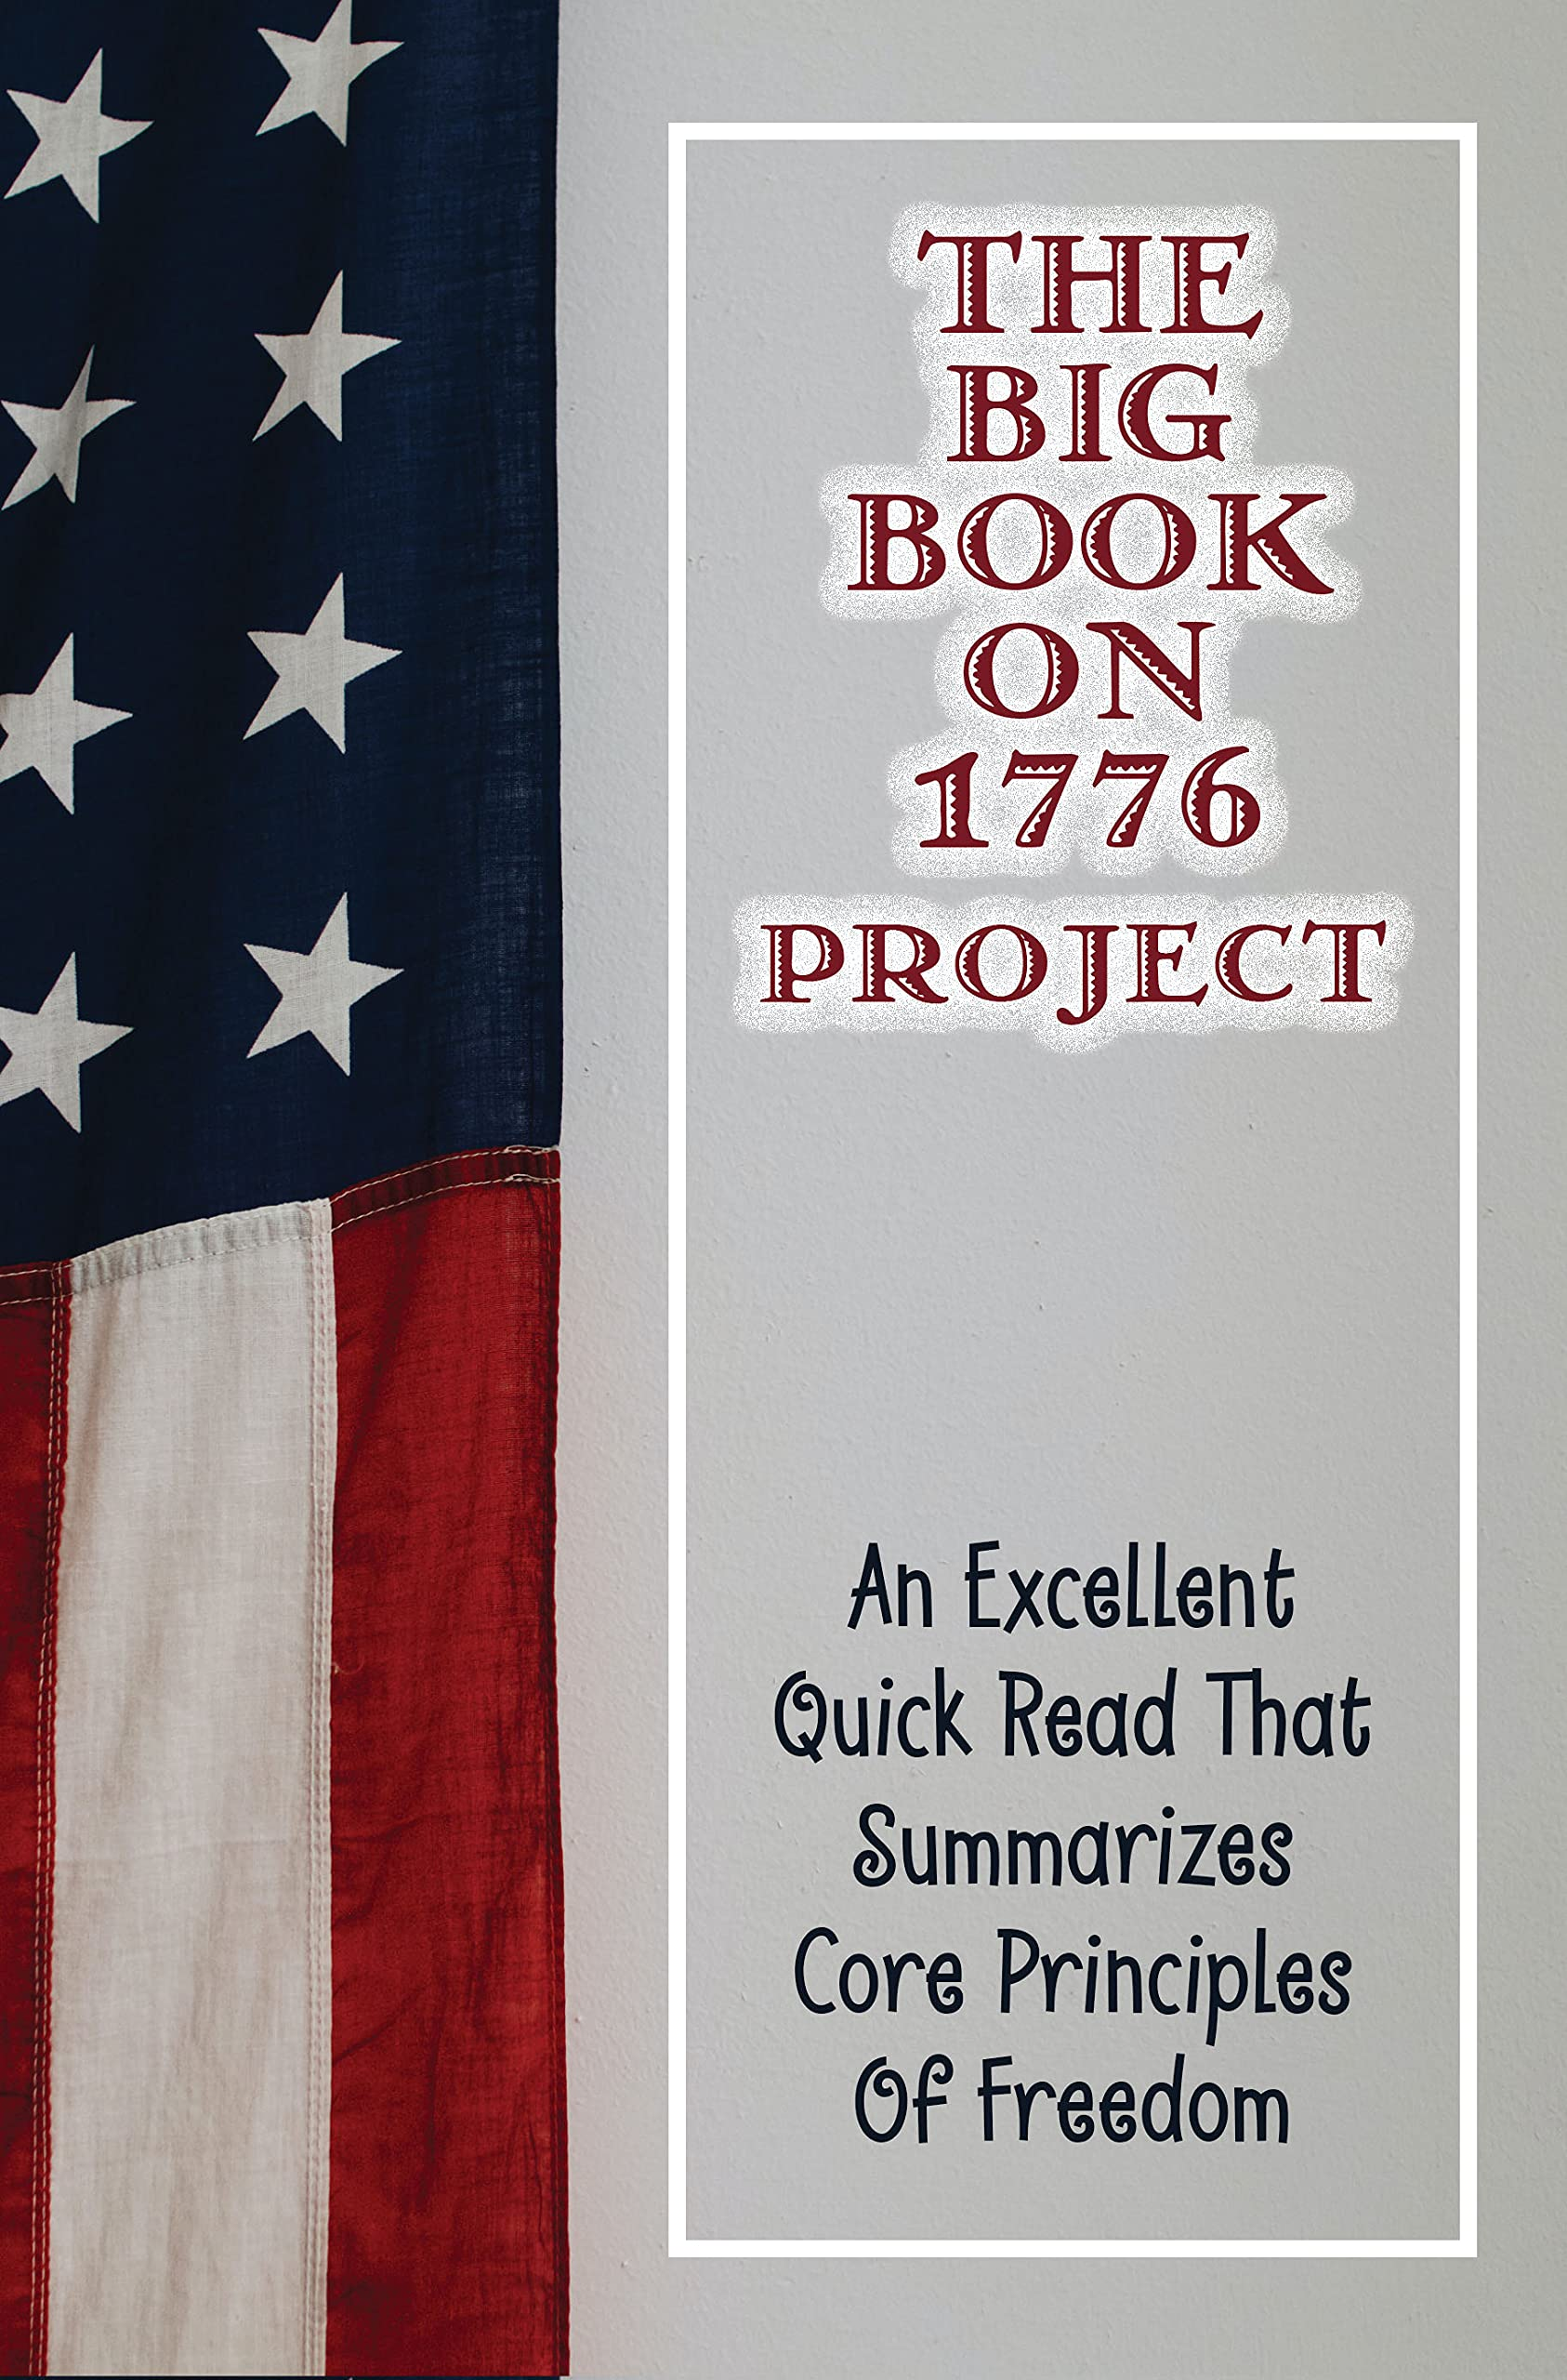 The Big Book On 1776 Project: An Excellent Quick Read That Summarizes Core Principles Of Freedom: Who Wrote The 1776 Project